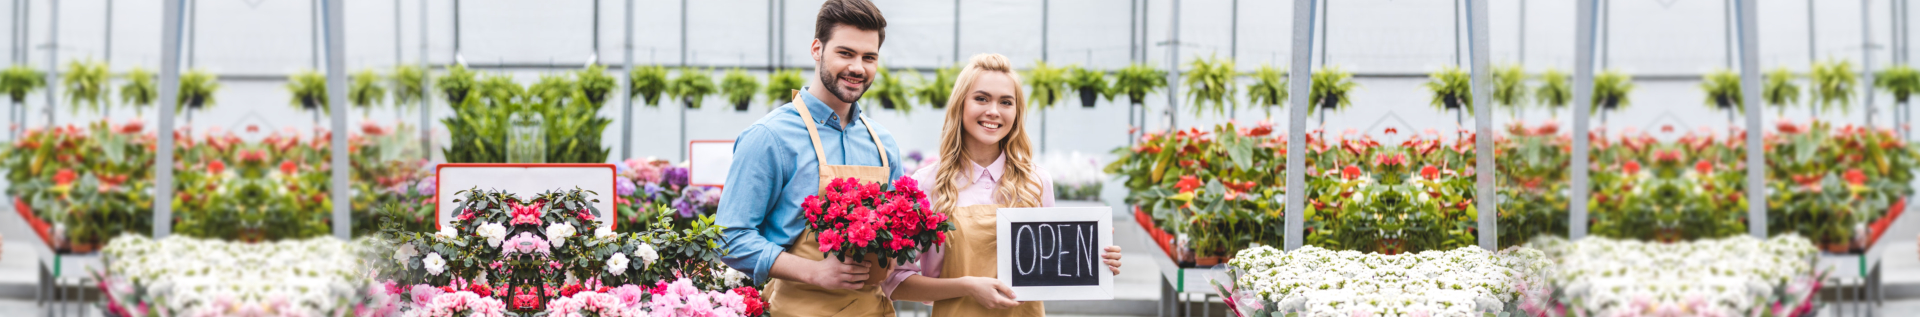 portrait of man holding flowers and woman holding open signage